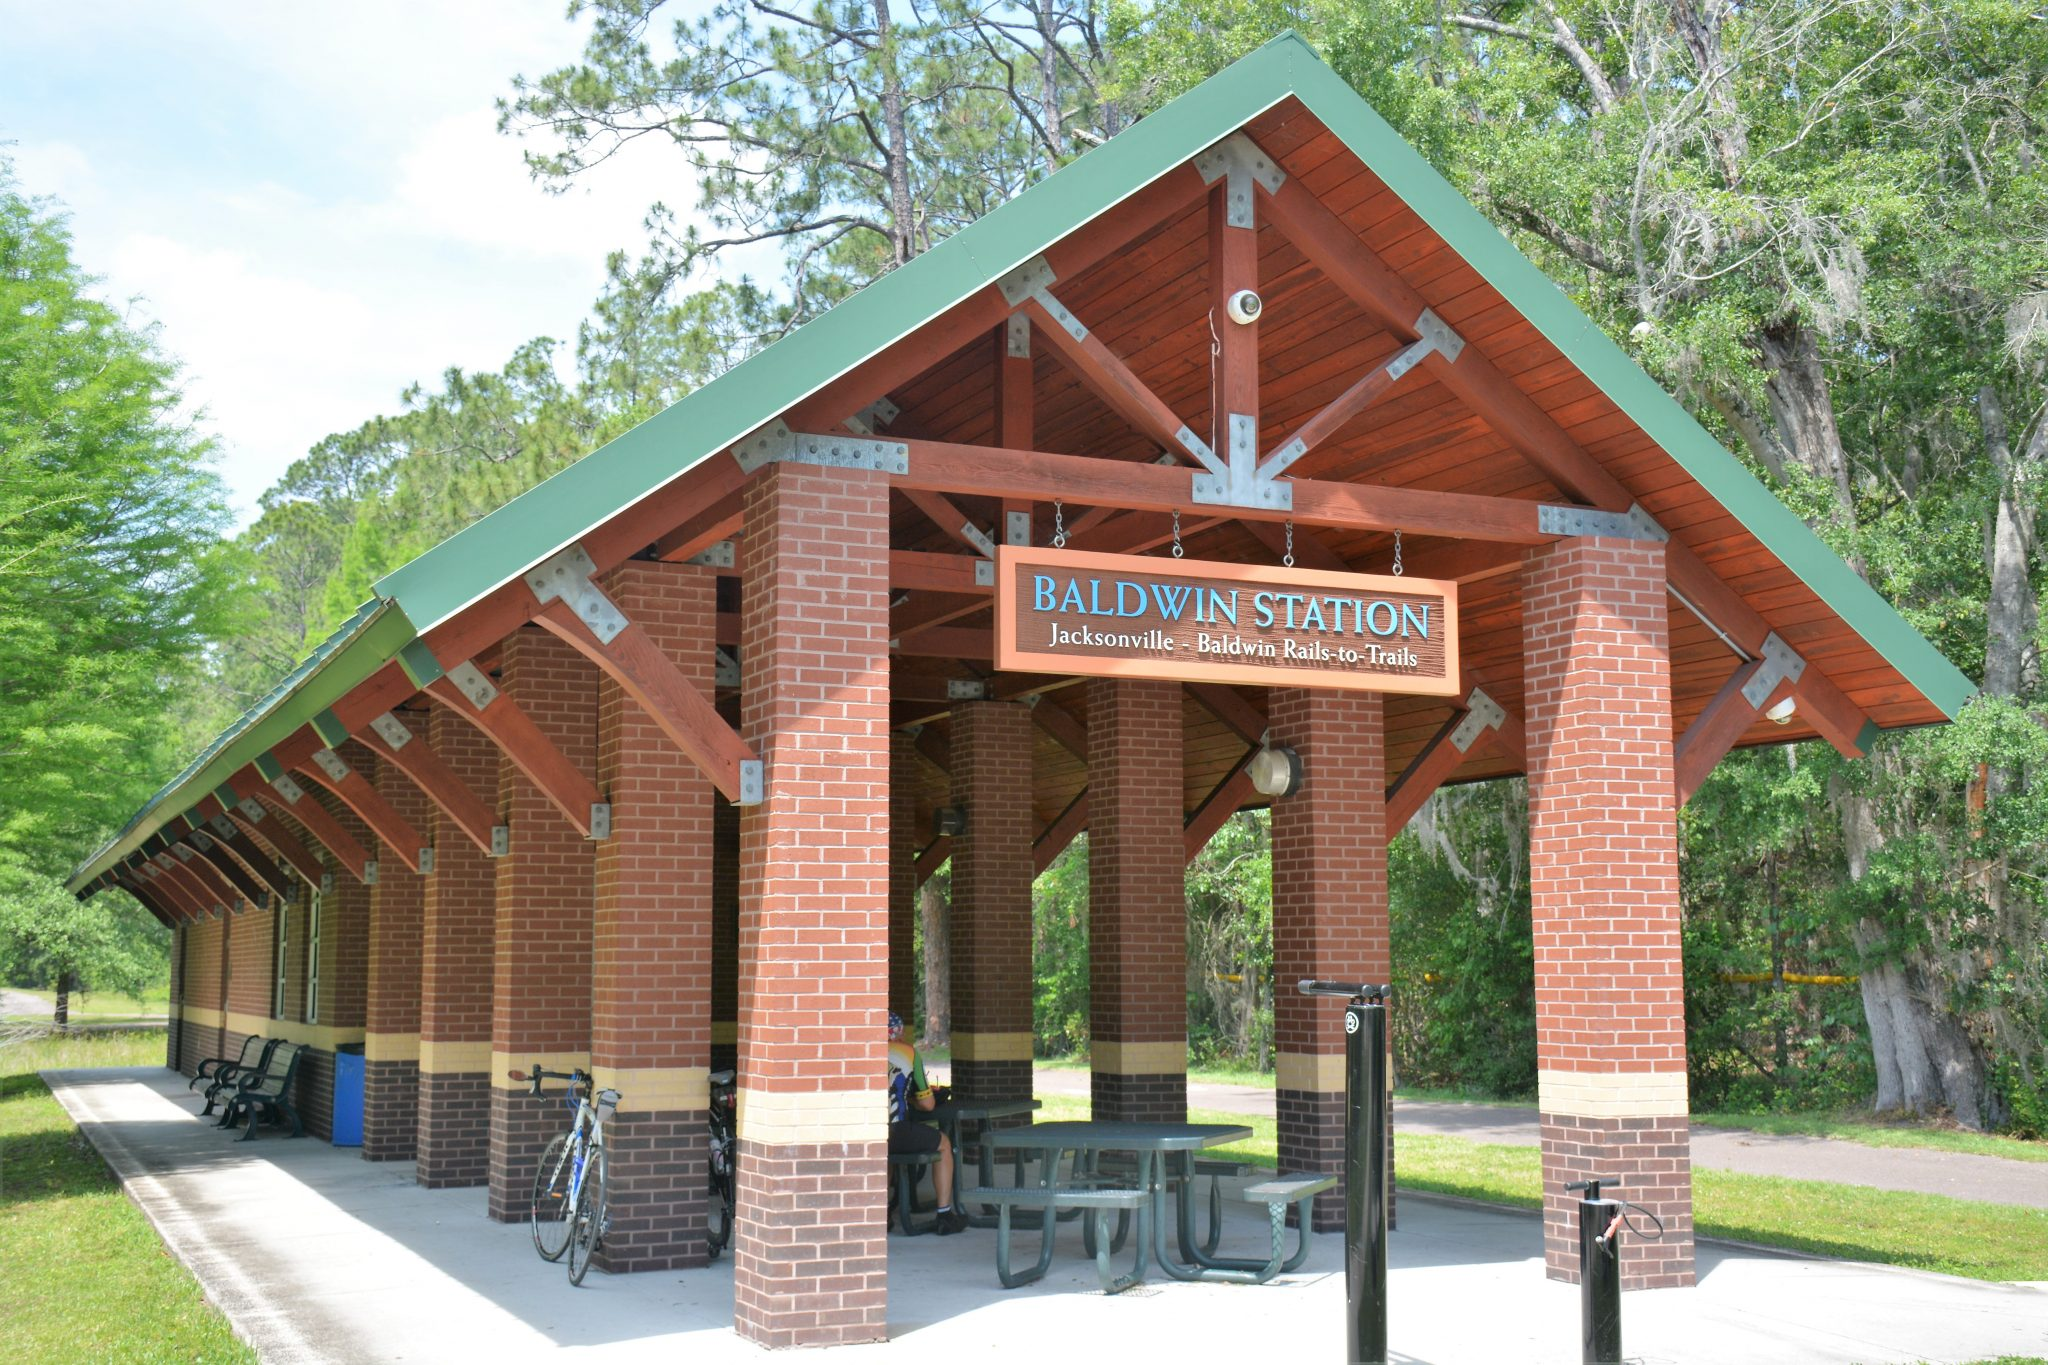 Baldwin Station, Jacksonville-Baldwin Rail Trail